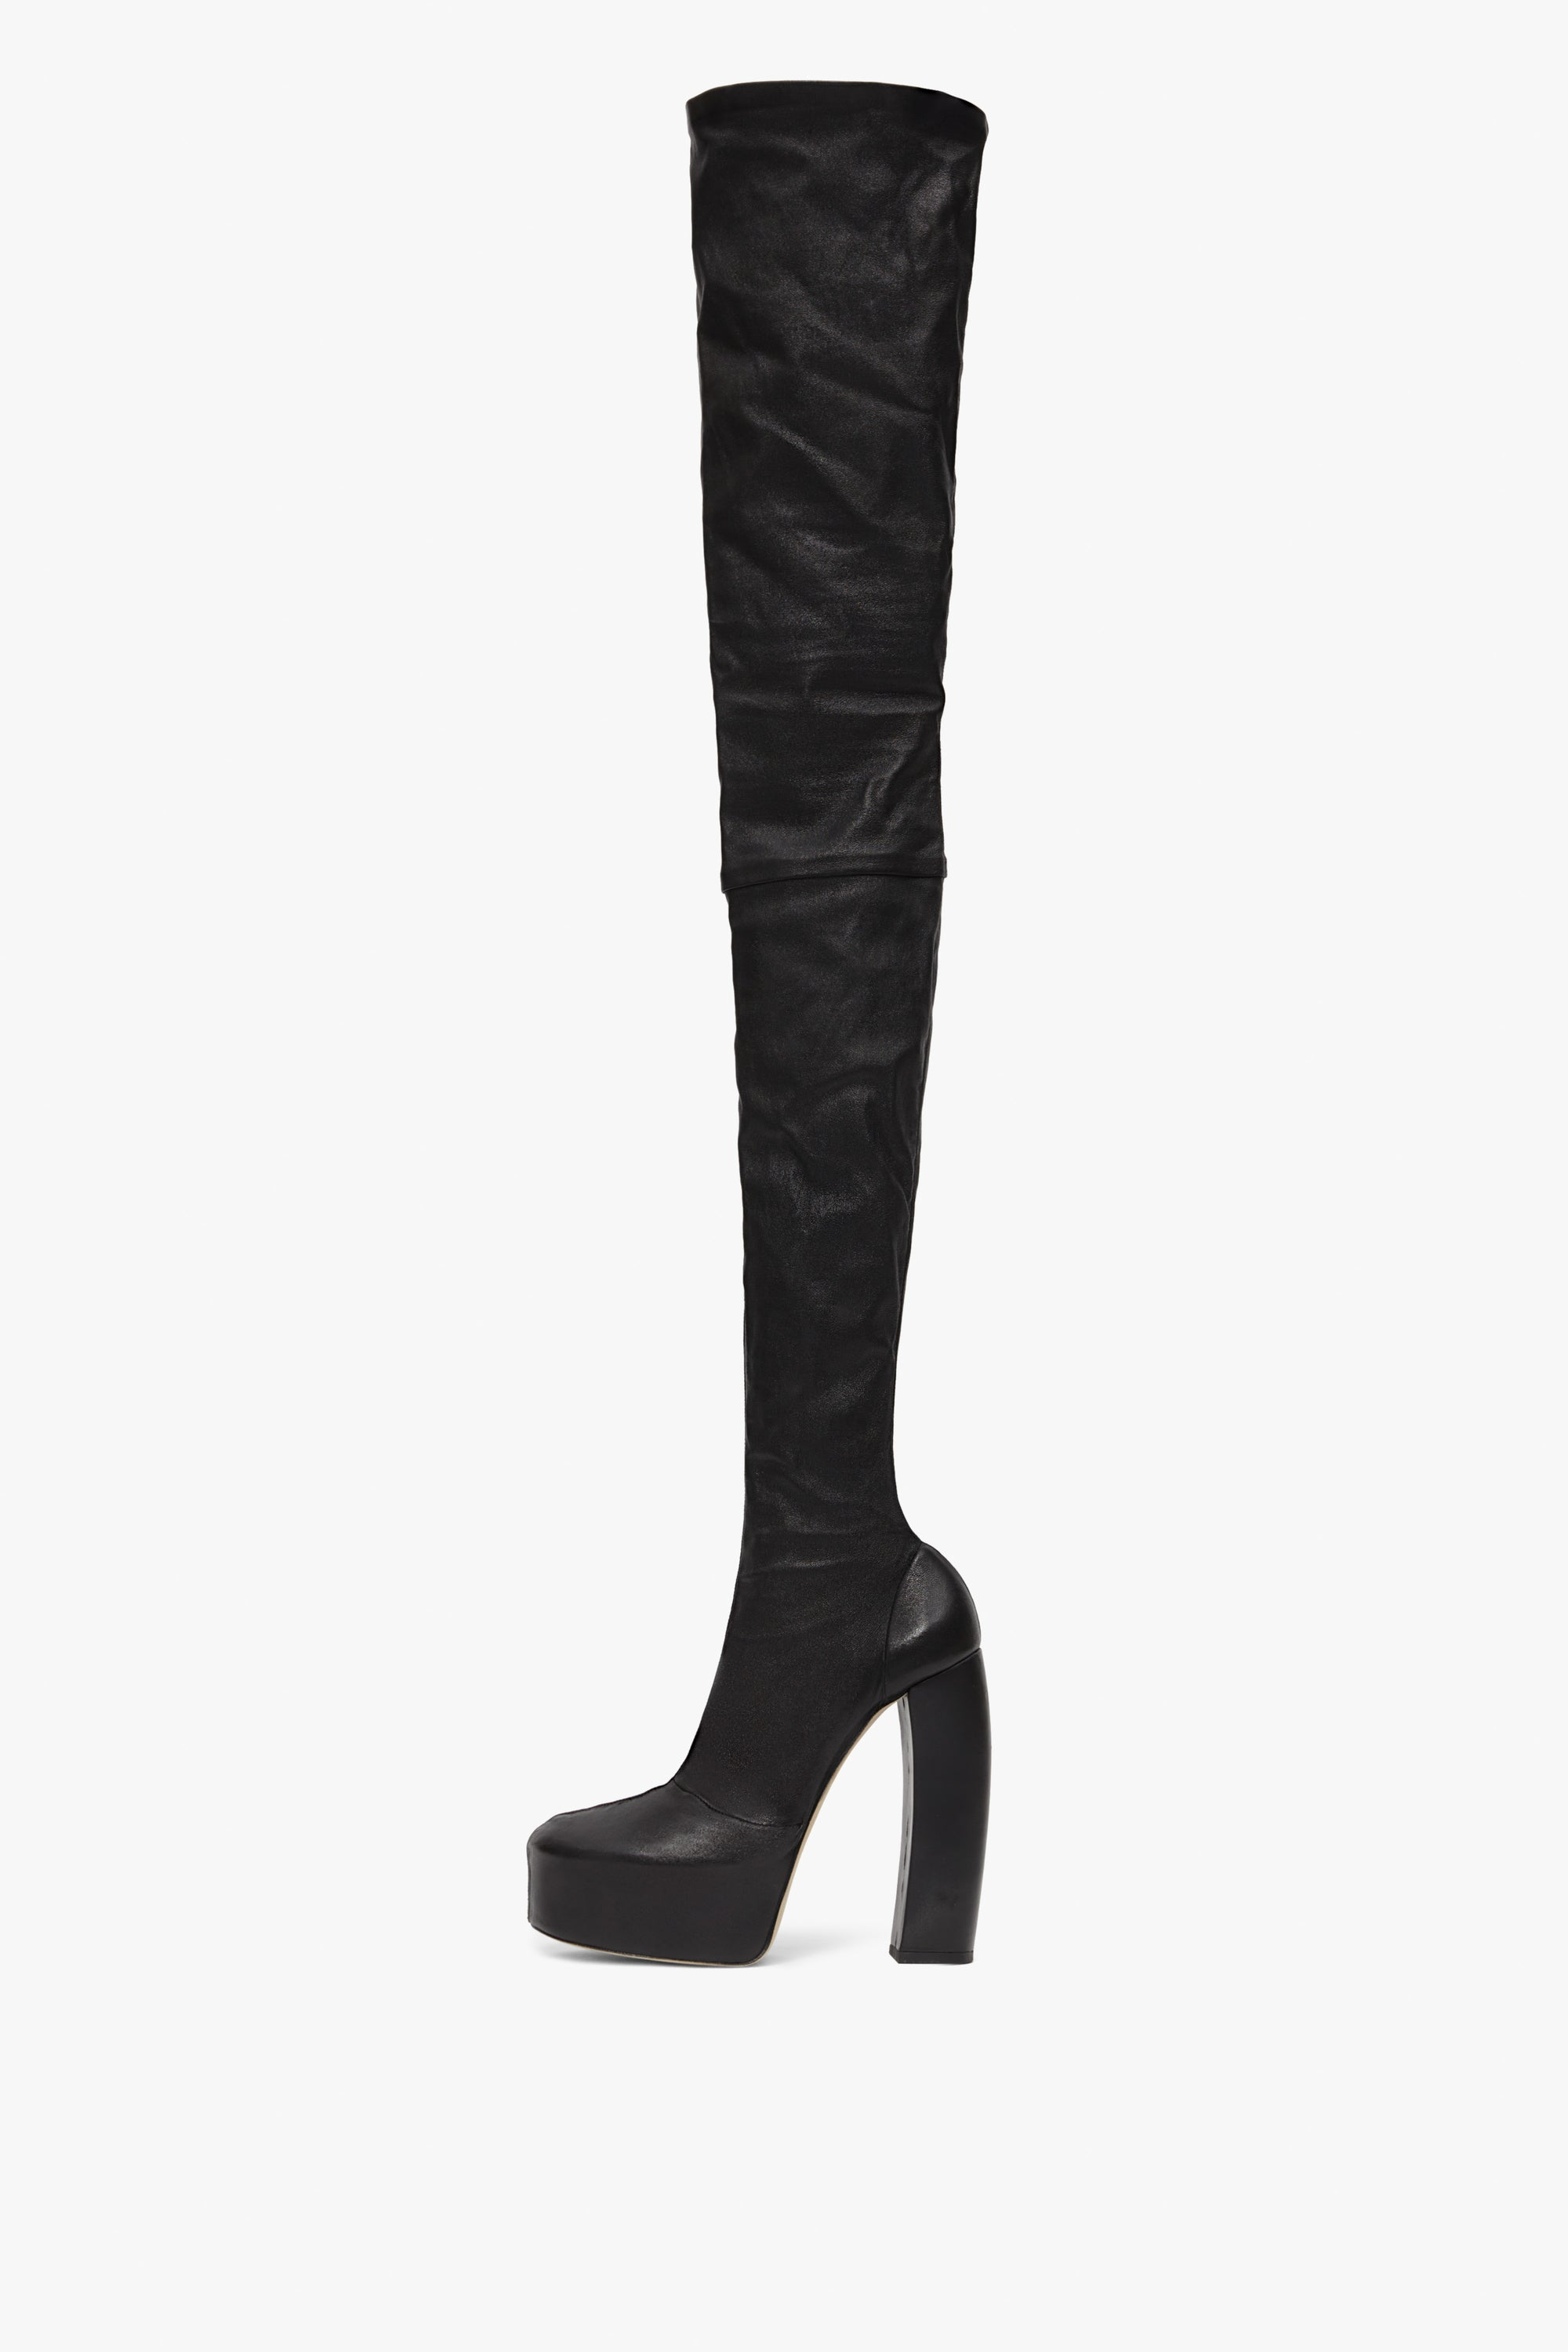 Isabella 155mm Over The Knee Stretch Boot in Black